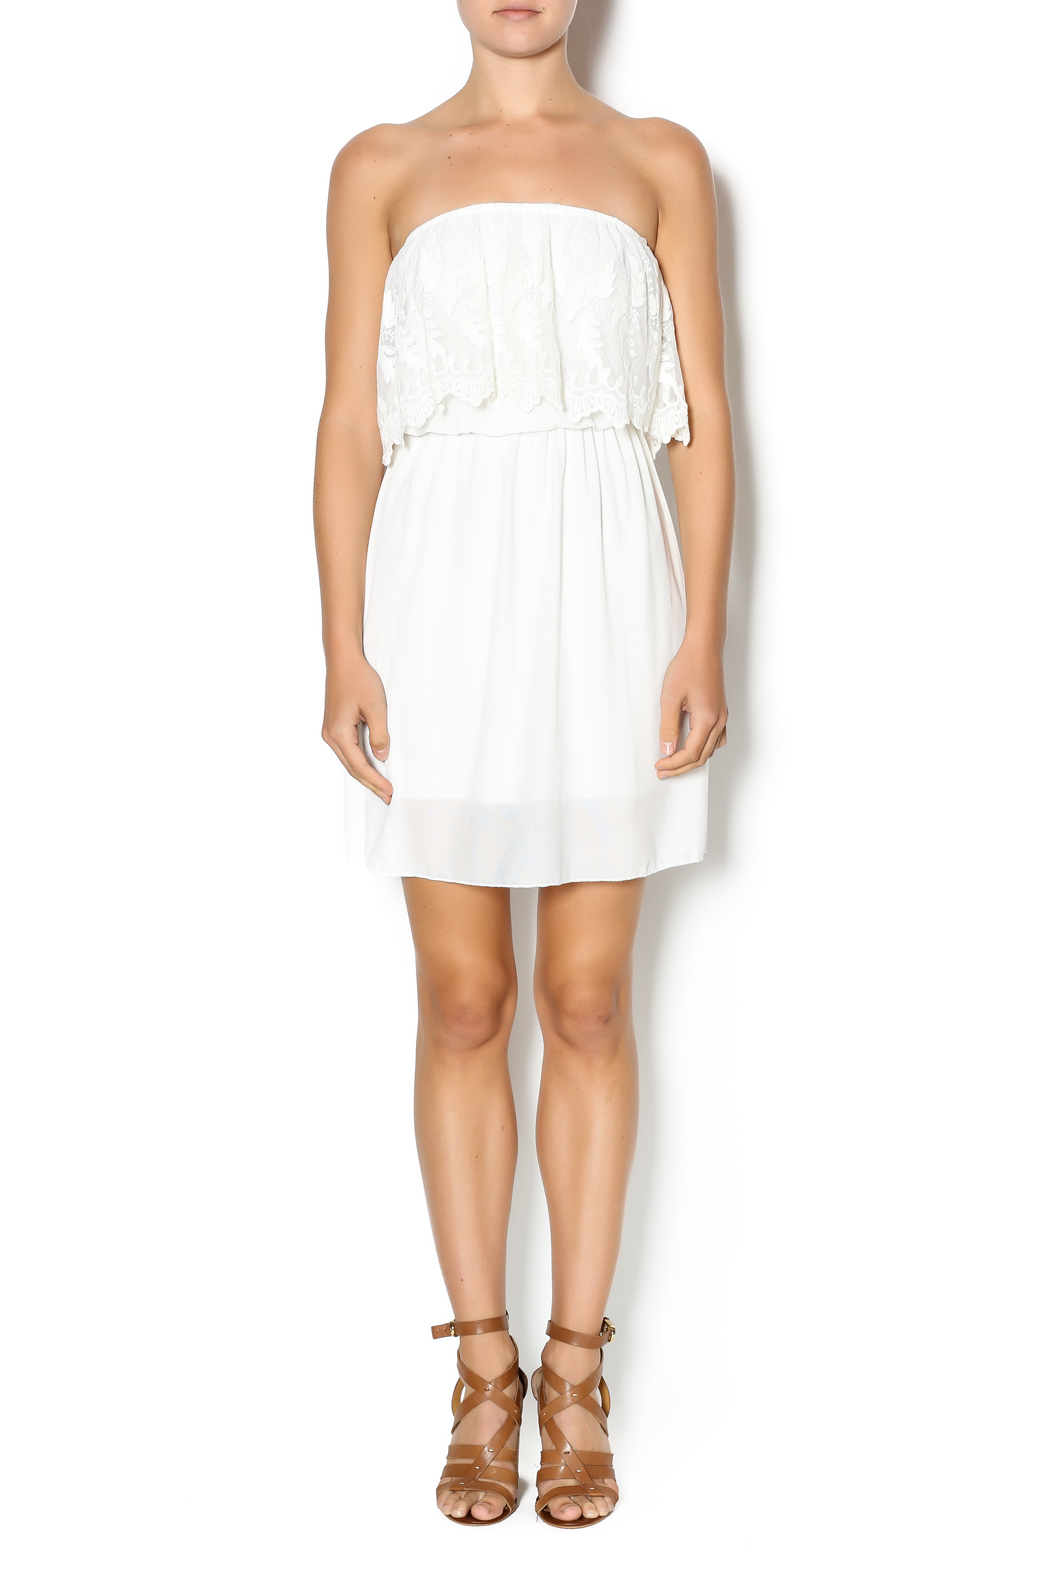 Manito Ivory Lace Strapless Dress - Front Full Image